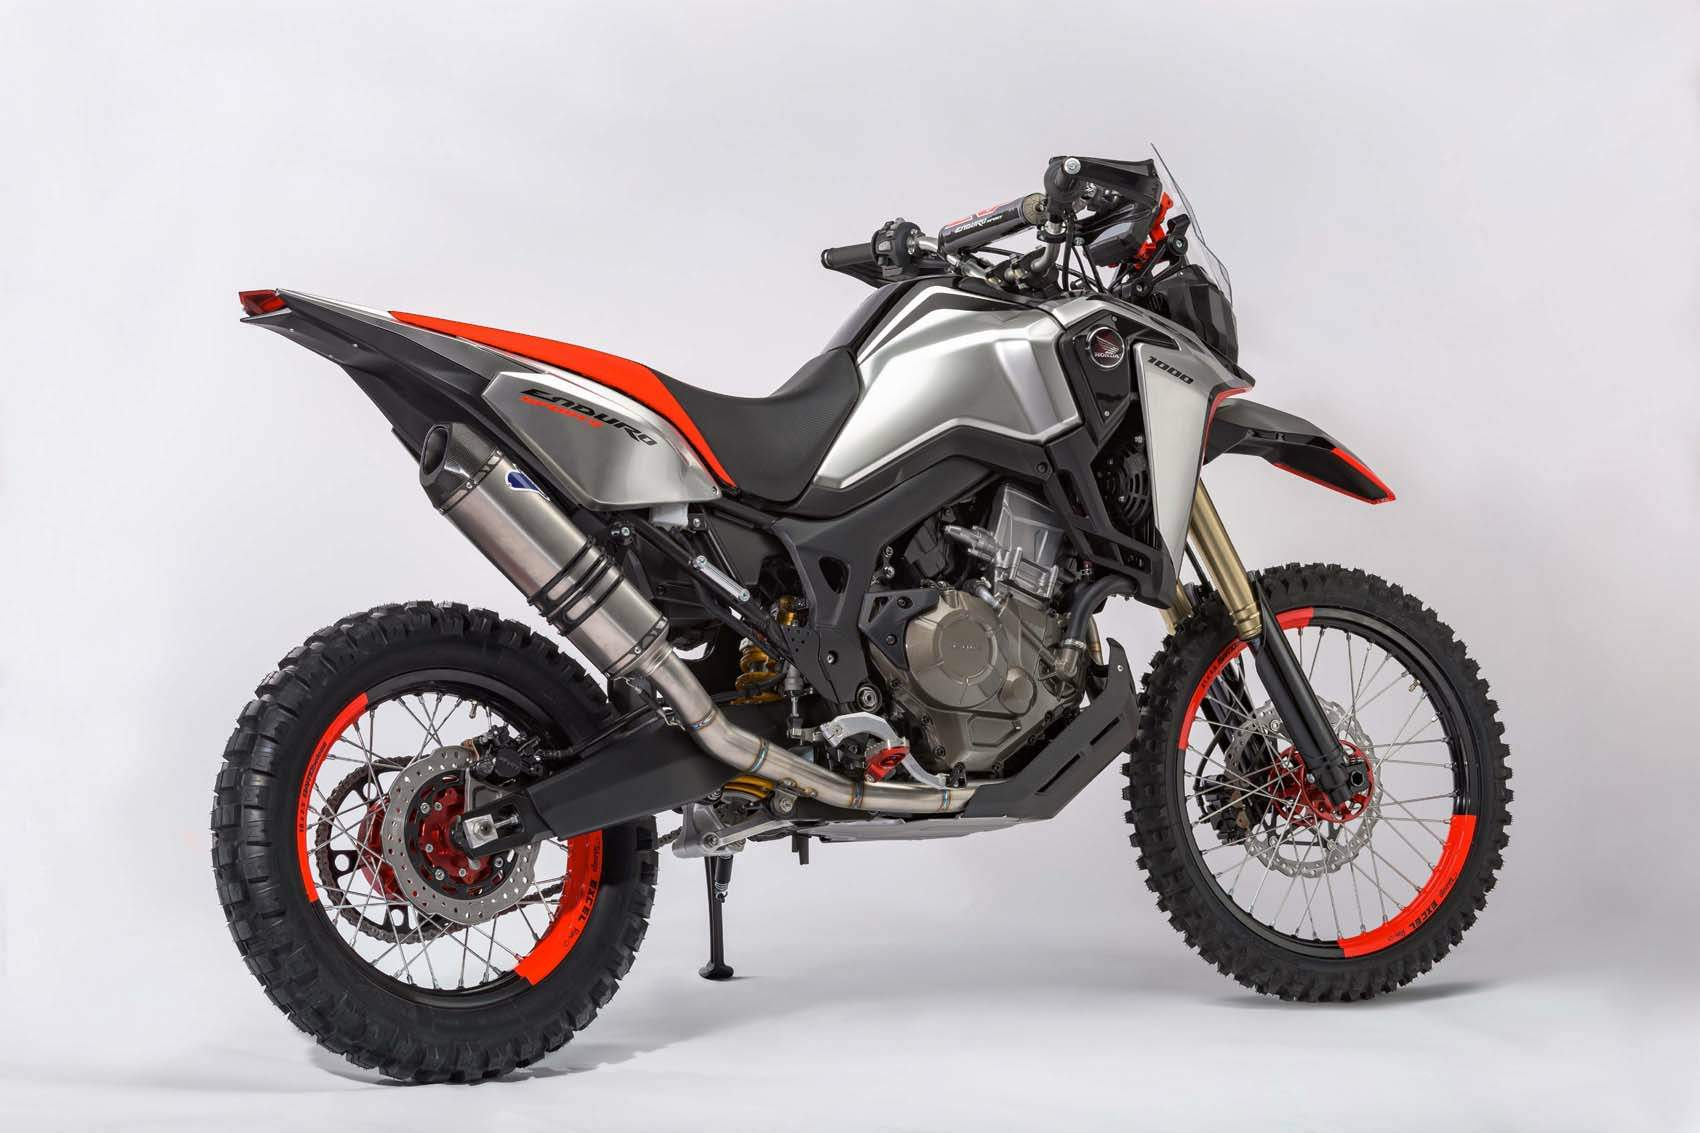 Мотоцикл Honda CRF 1000 Africa Twin Enduro Sports Concept 1990